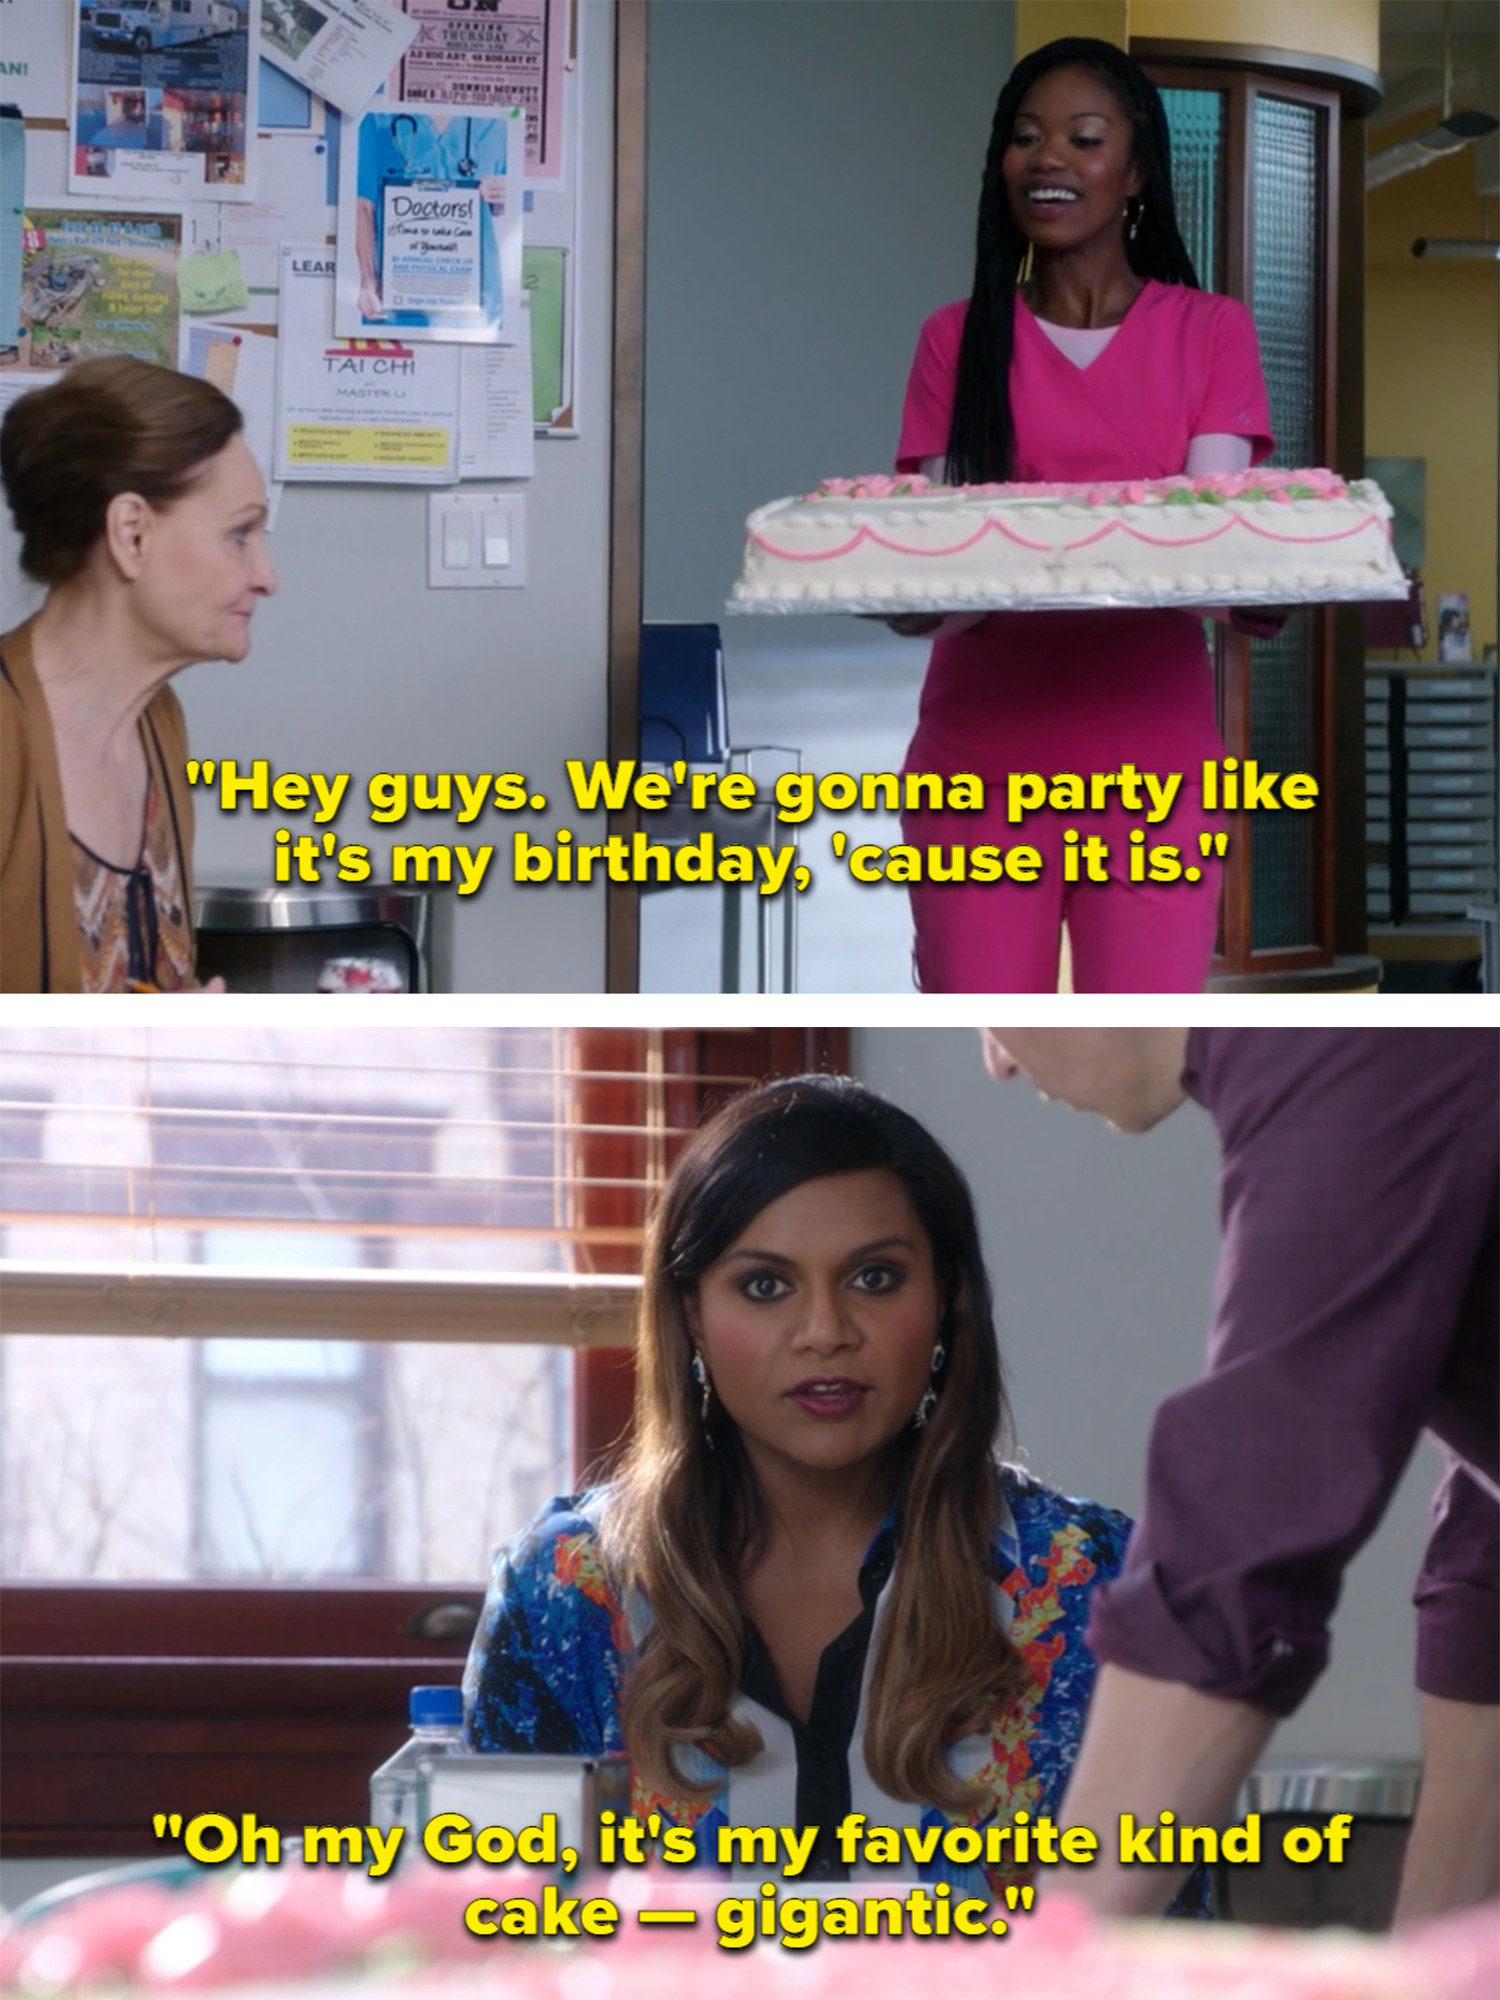 When Tamra brings in a big cake for her birthday, Mindy says it's her favorite kind of cake: gigantic.